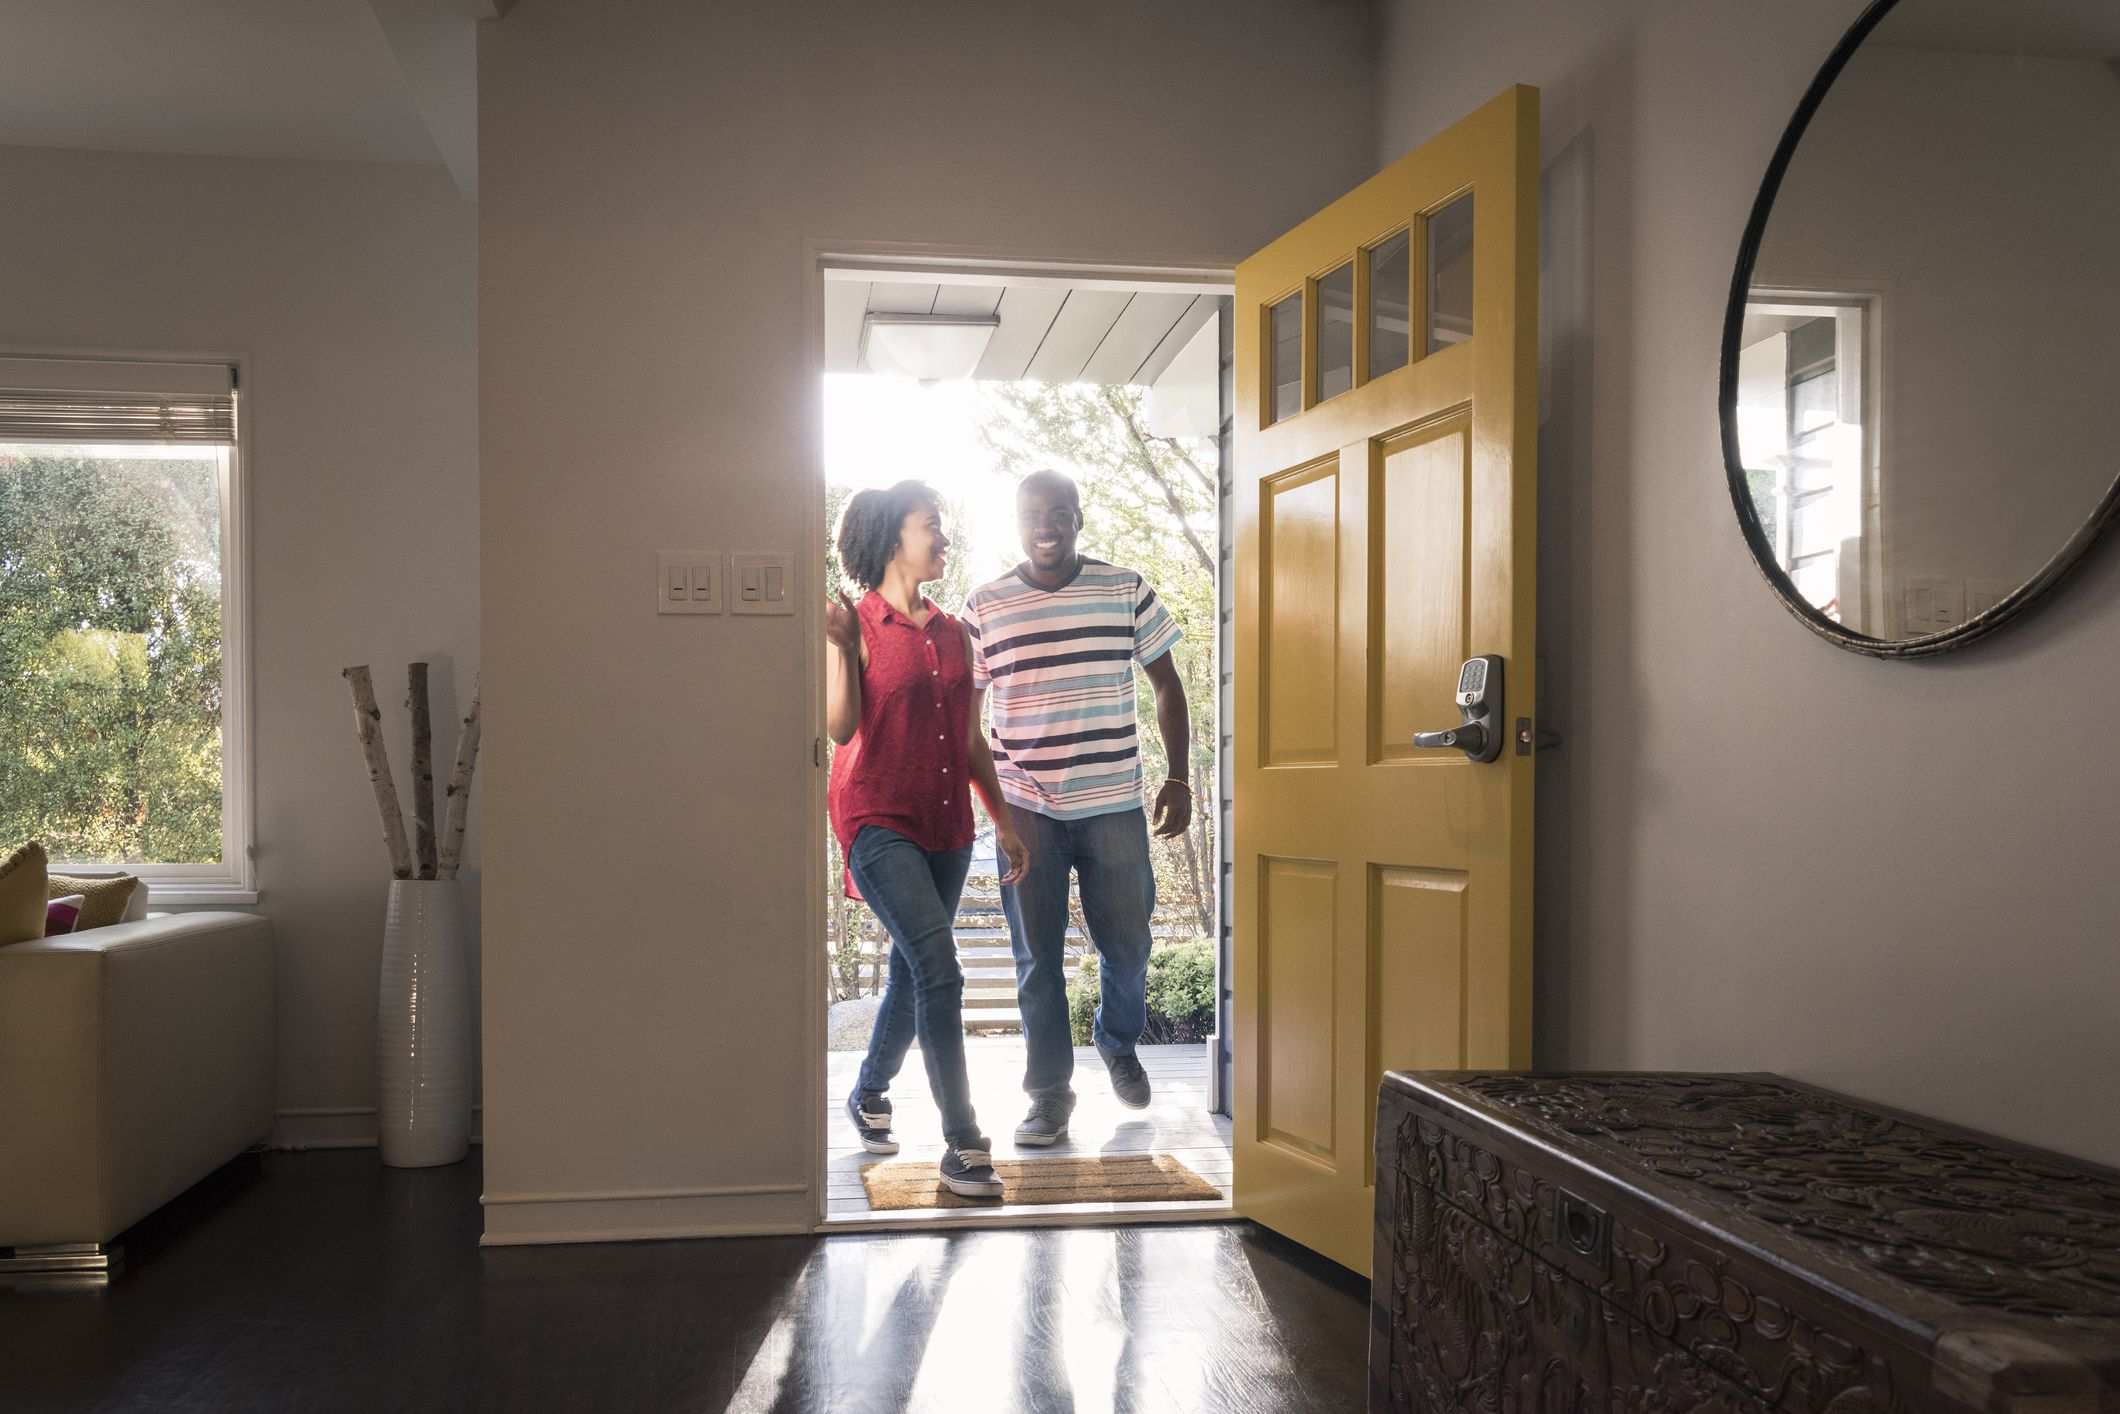 How to Make Efficient Use of Your Time While Looking for Real Estate